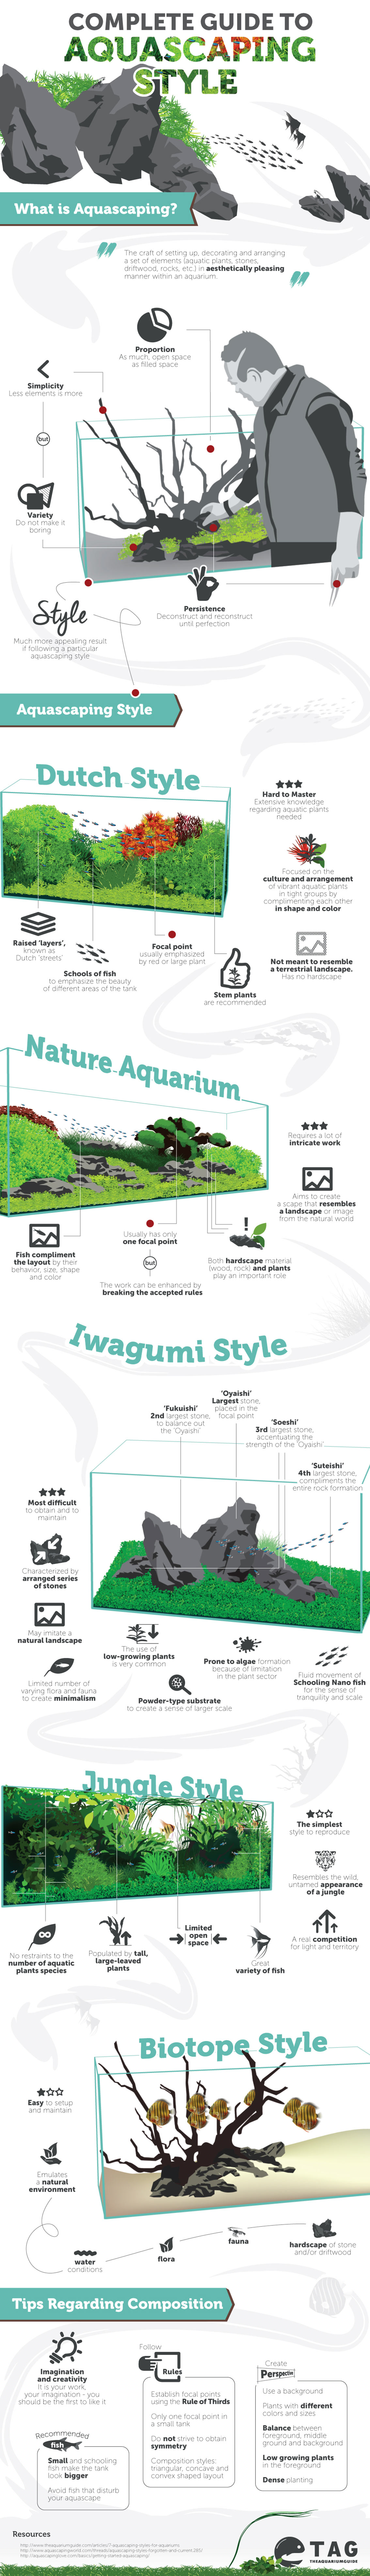 Aquascaping Styles Guide for Pet Fish Infographic